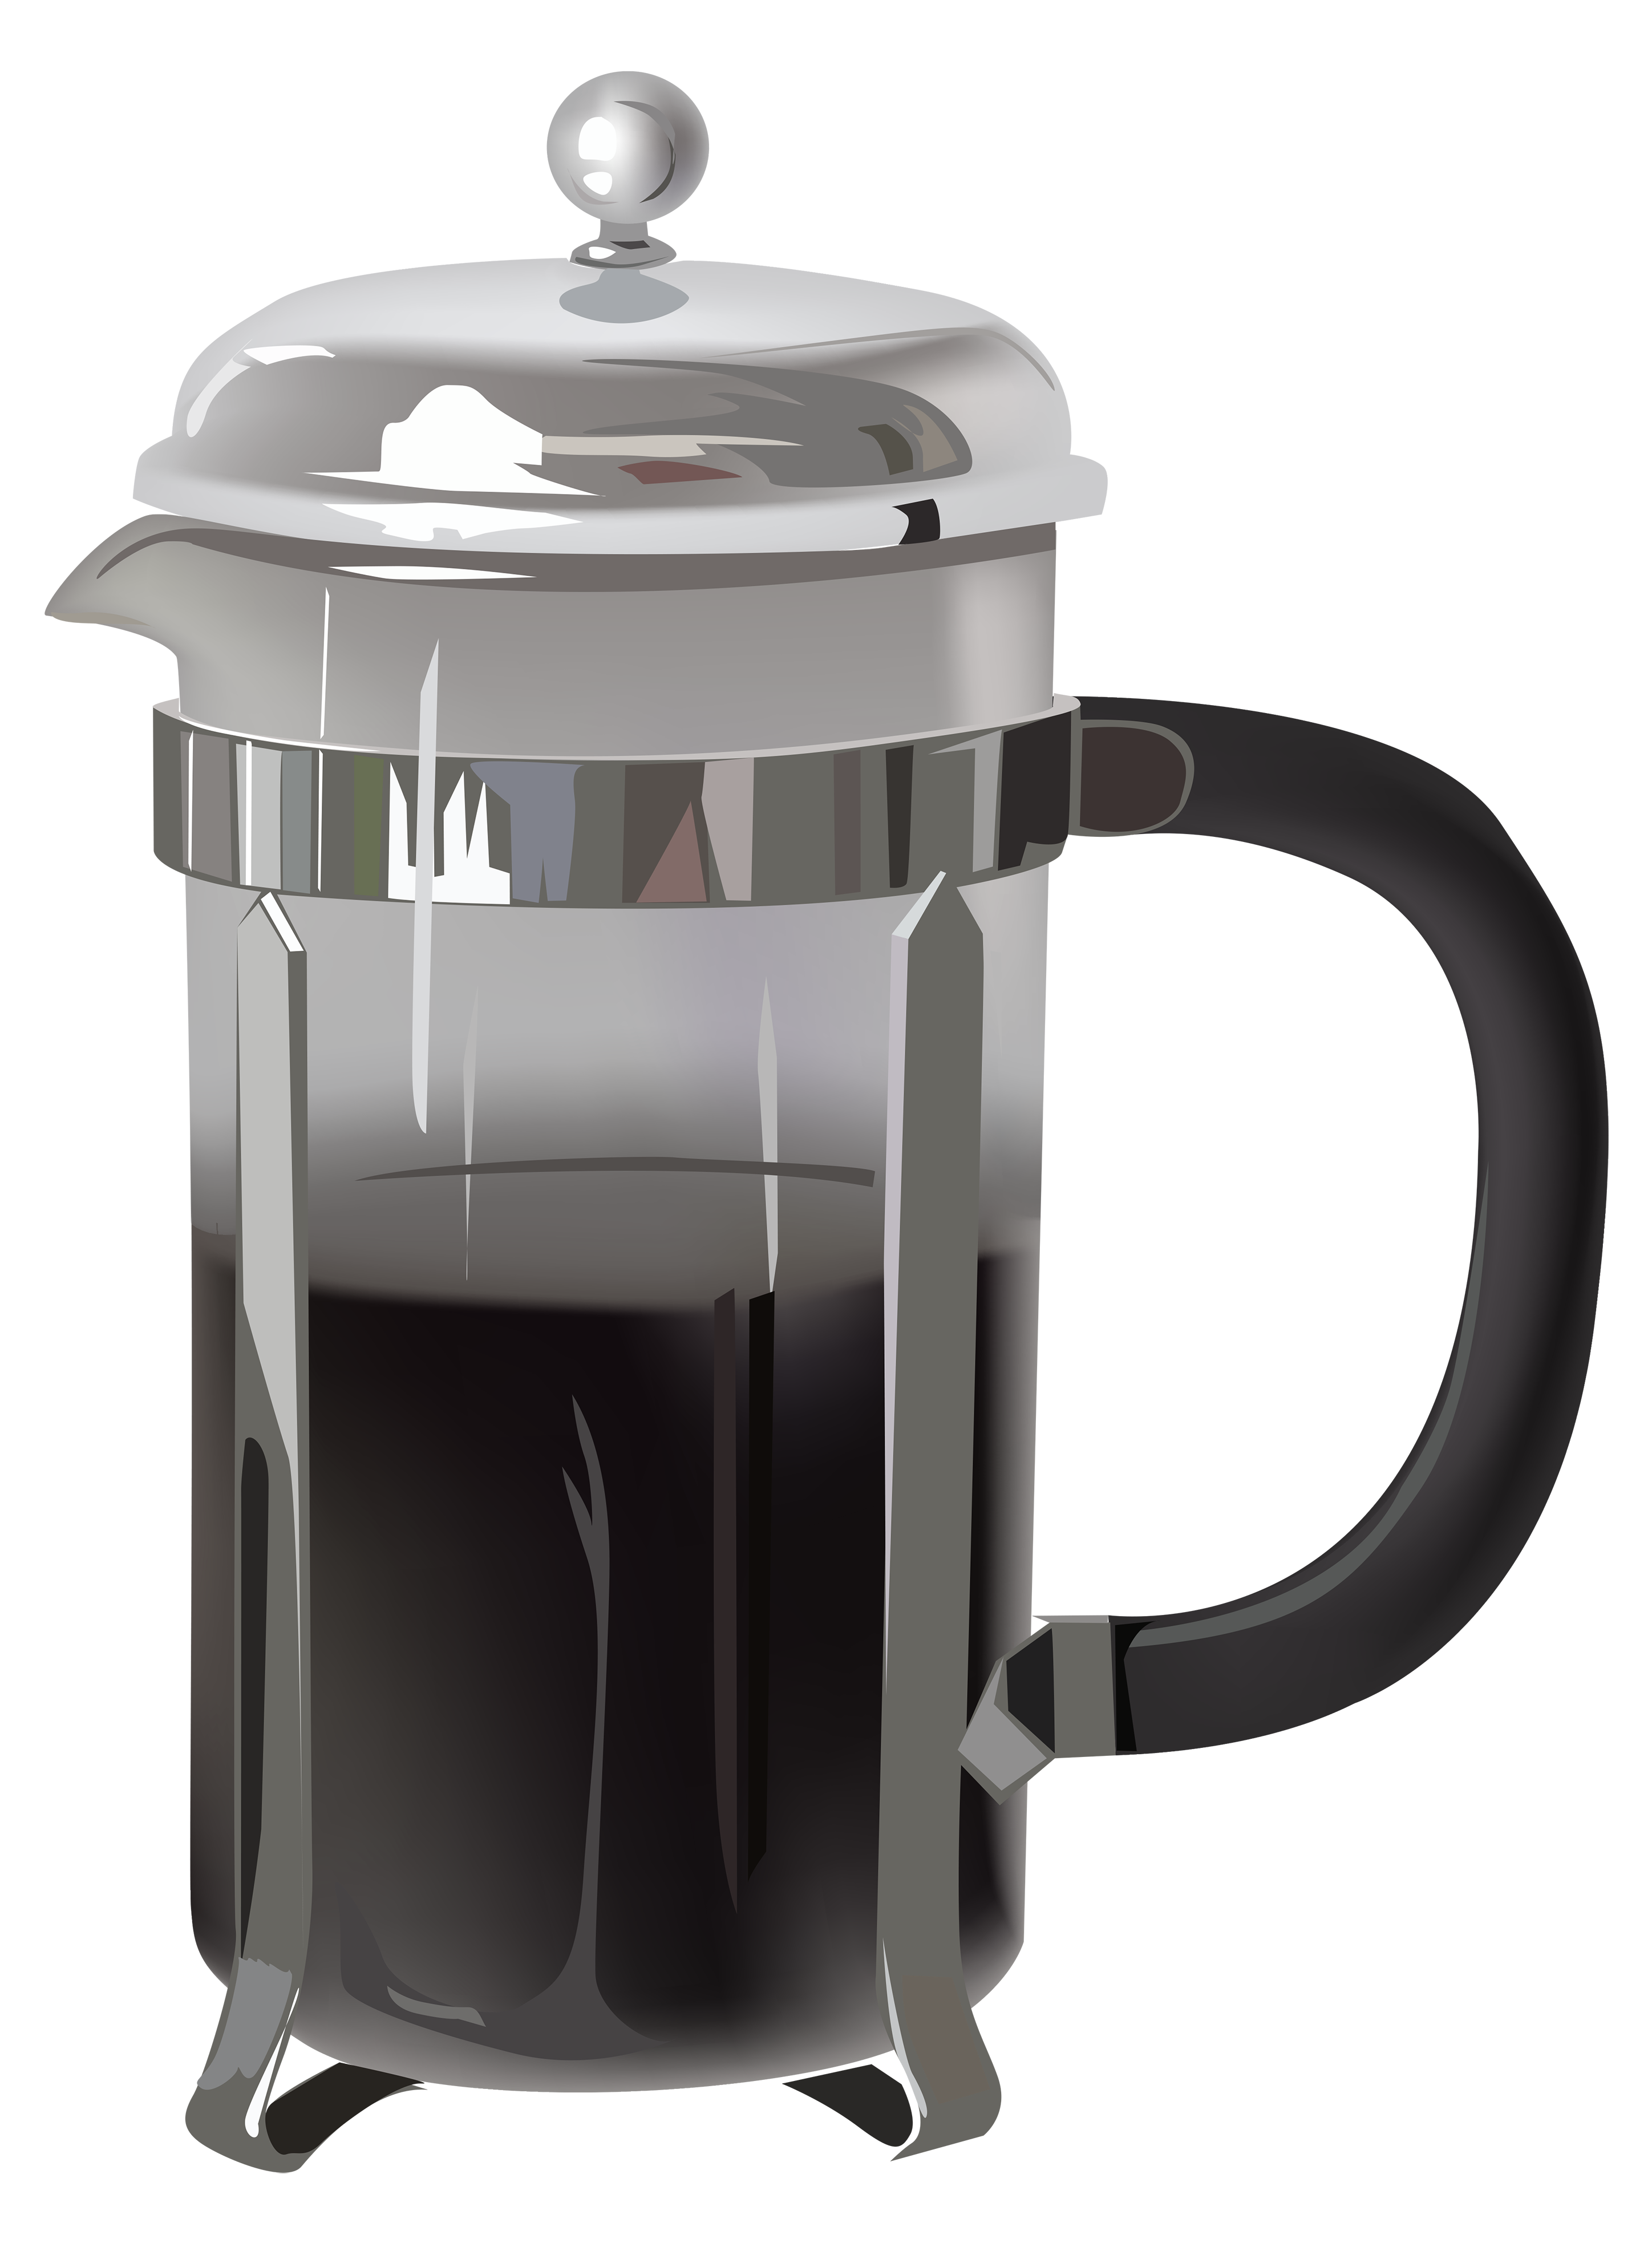 Pot png picture gallery. Clipart coffee kettle